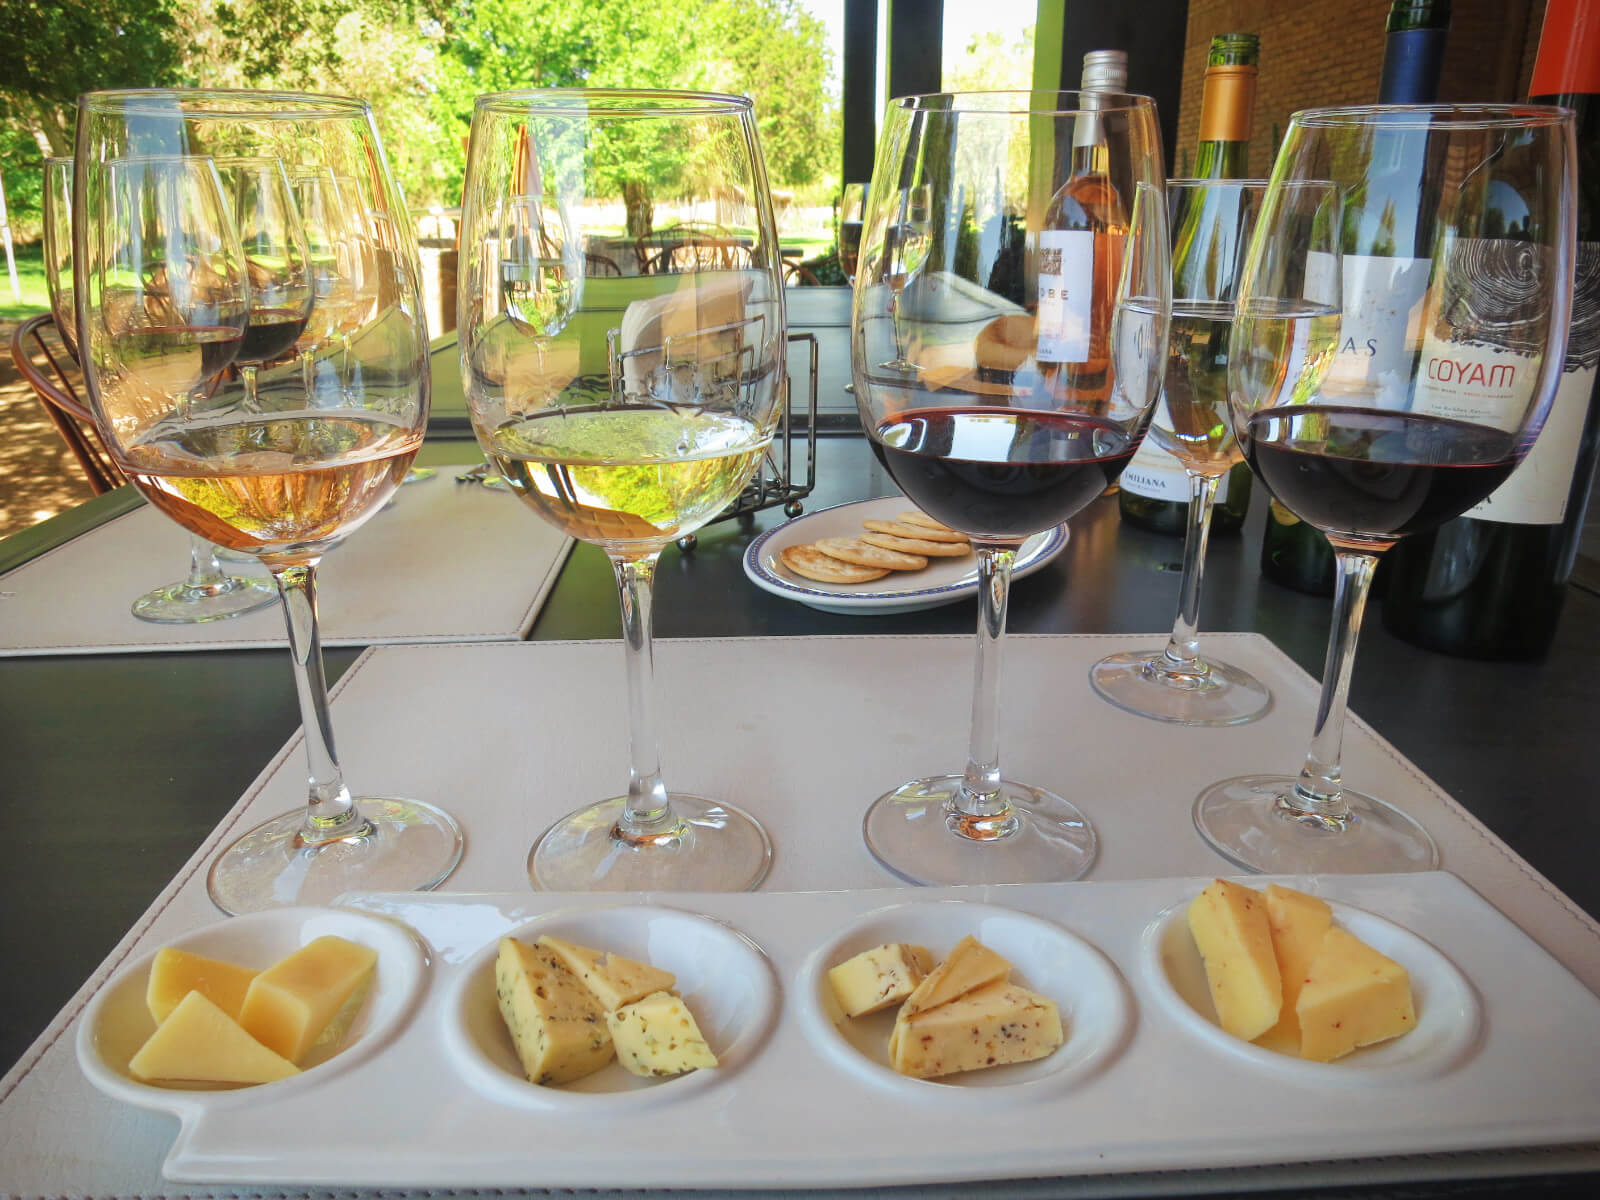 Our delicious wine and cheese pairing at Emiliana Organic Vineyards. Our favorite stop on our day of wine tasting in Valparaiso without a tour!